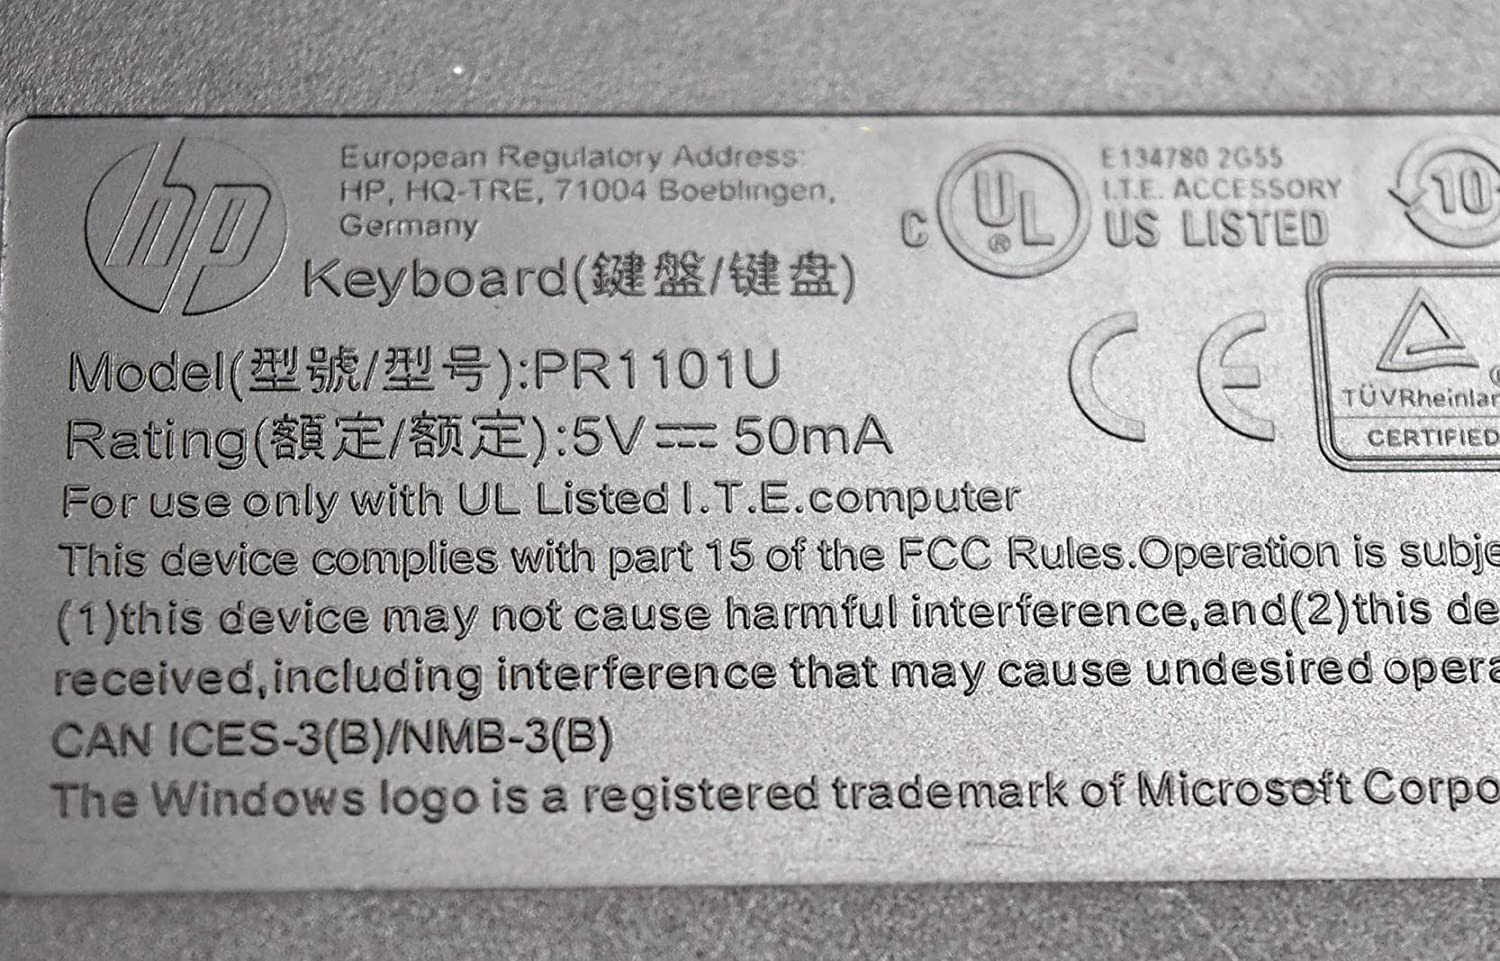 719901-001 Fits HP DELL Acer Asus Gateway Lenovo IBM MSI Compaq 729339-001 PR1101U HP Essential Keyboard Multimedia Mouse Combo Wired USB PC Desktop Laptop Tablet Computer H6L29AA